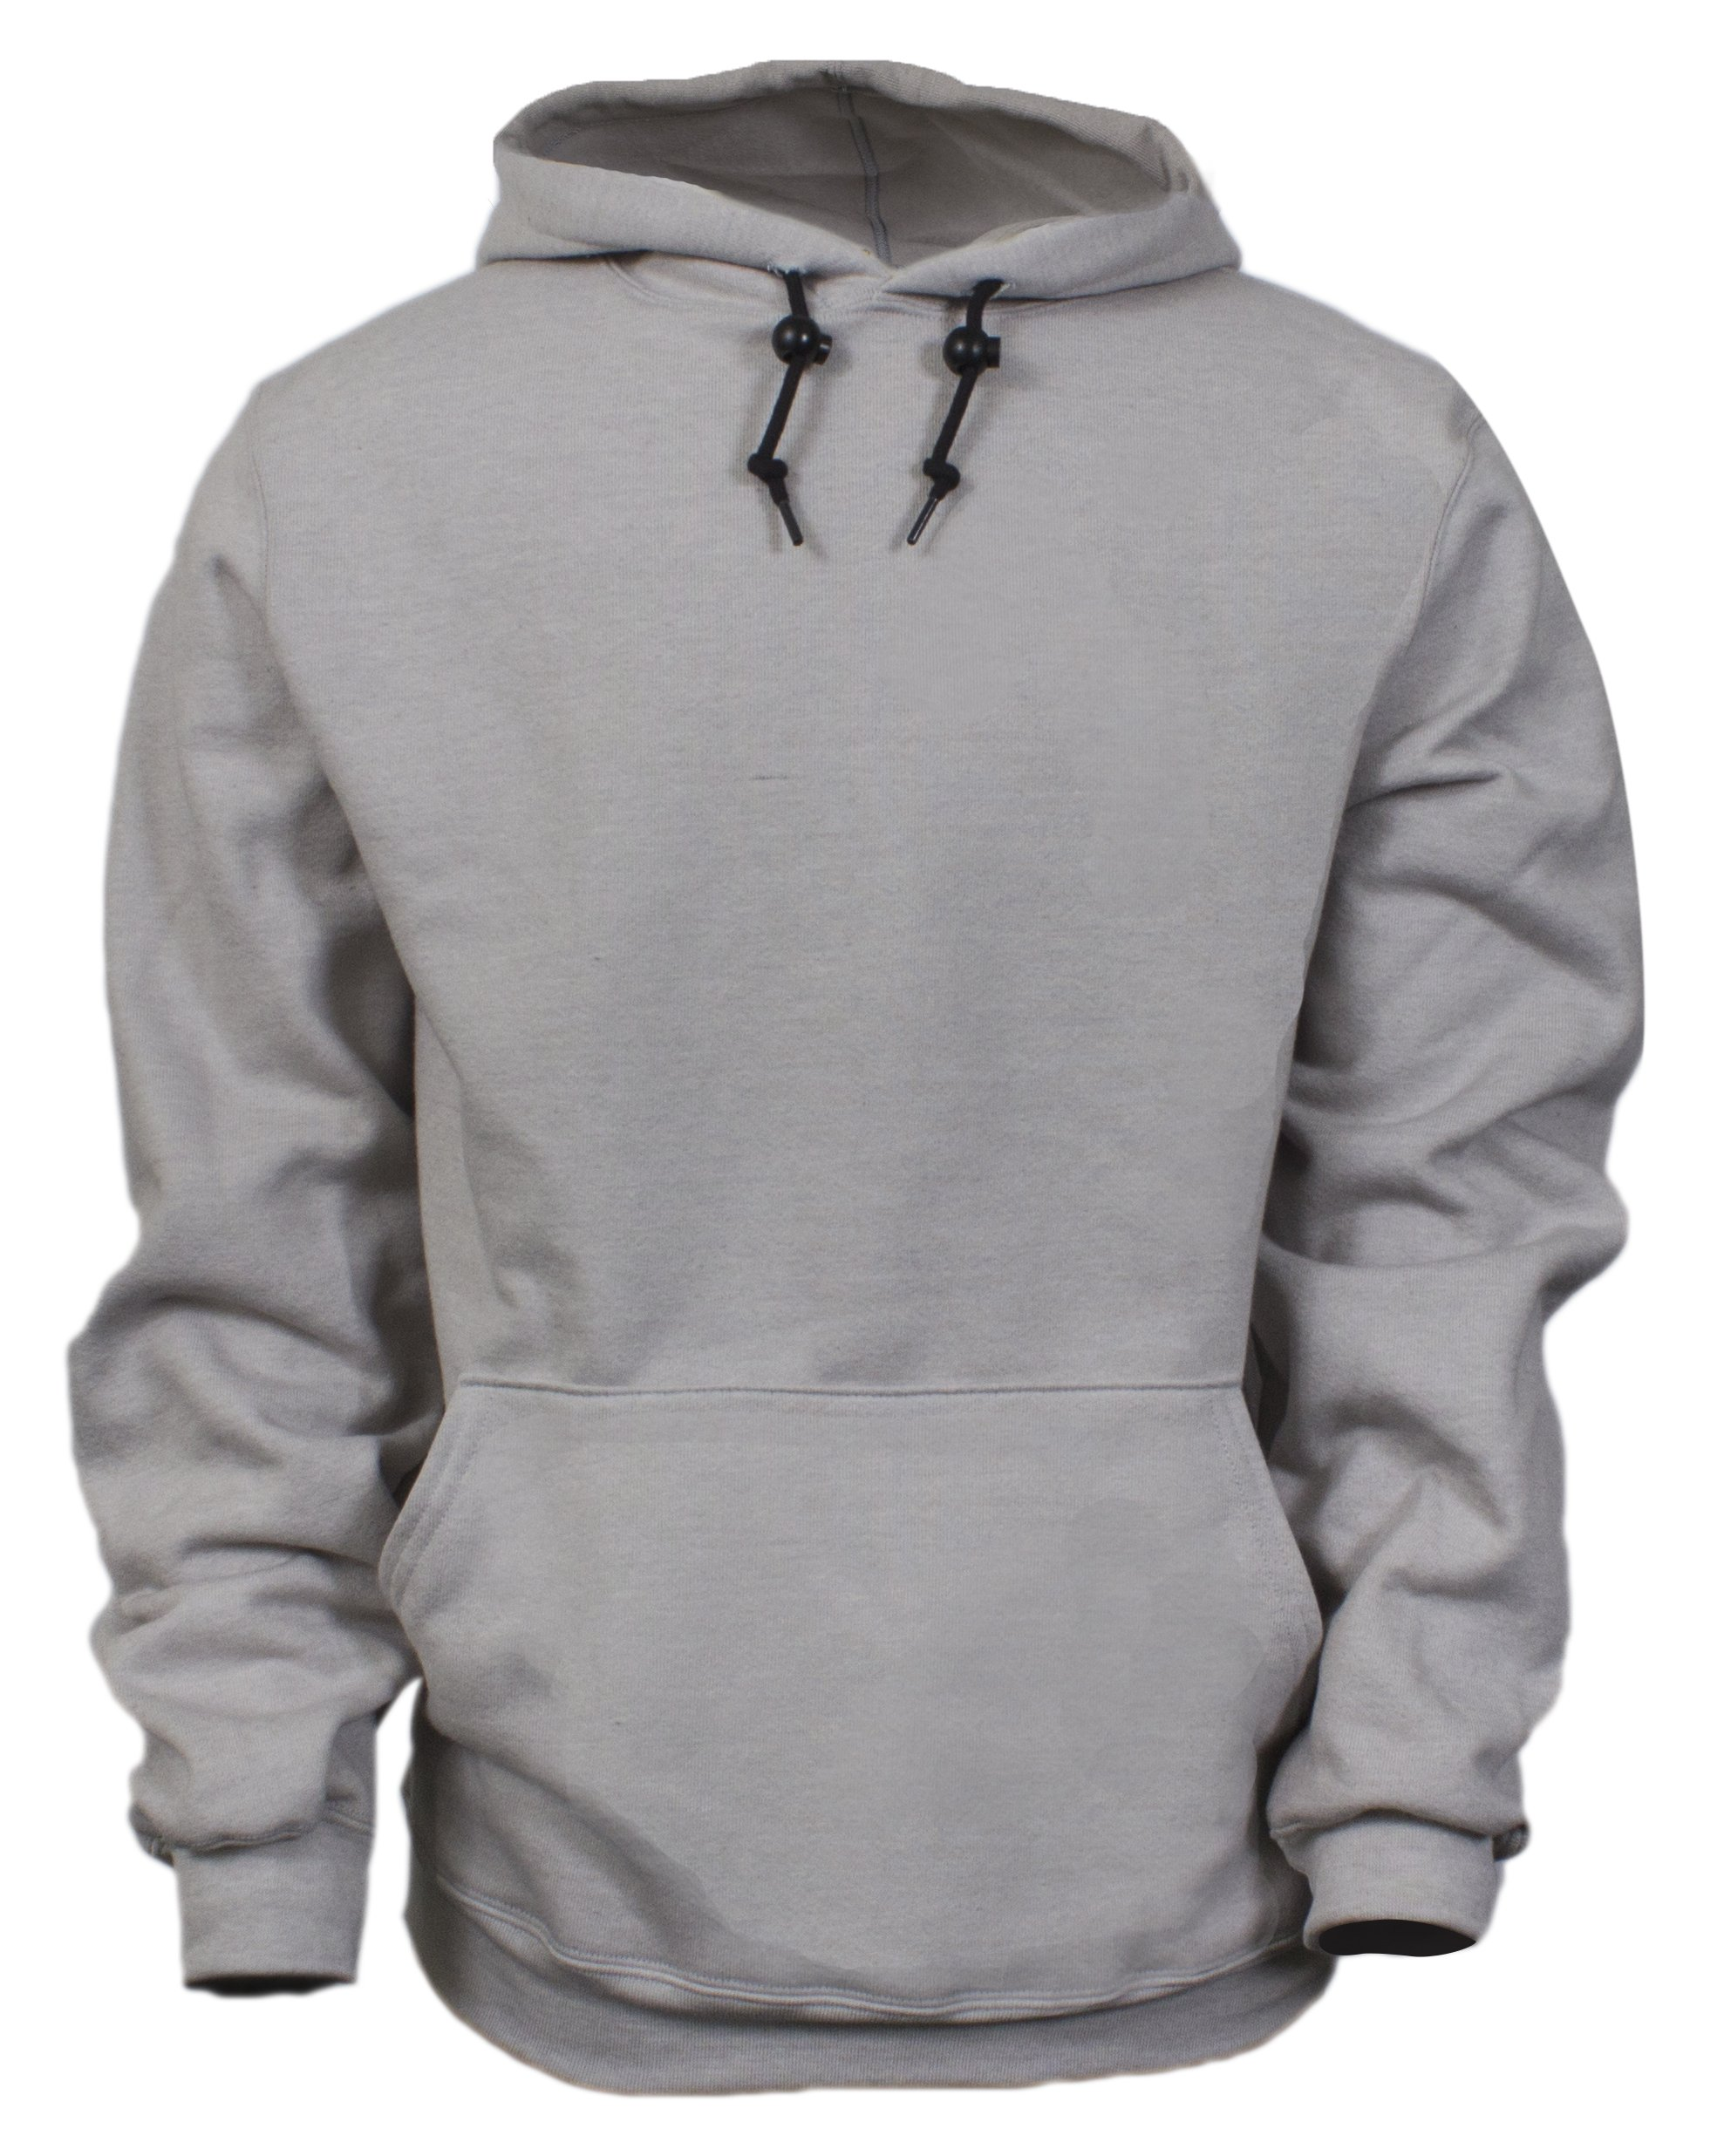 National Safety Apparel C21IG03XL 14 oz Flame Resistant Modacrylic Blend Fleece Hooded Pullover Sweatshirt, X-Large, Gray